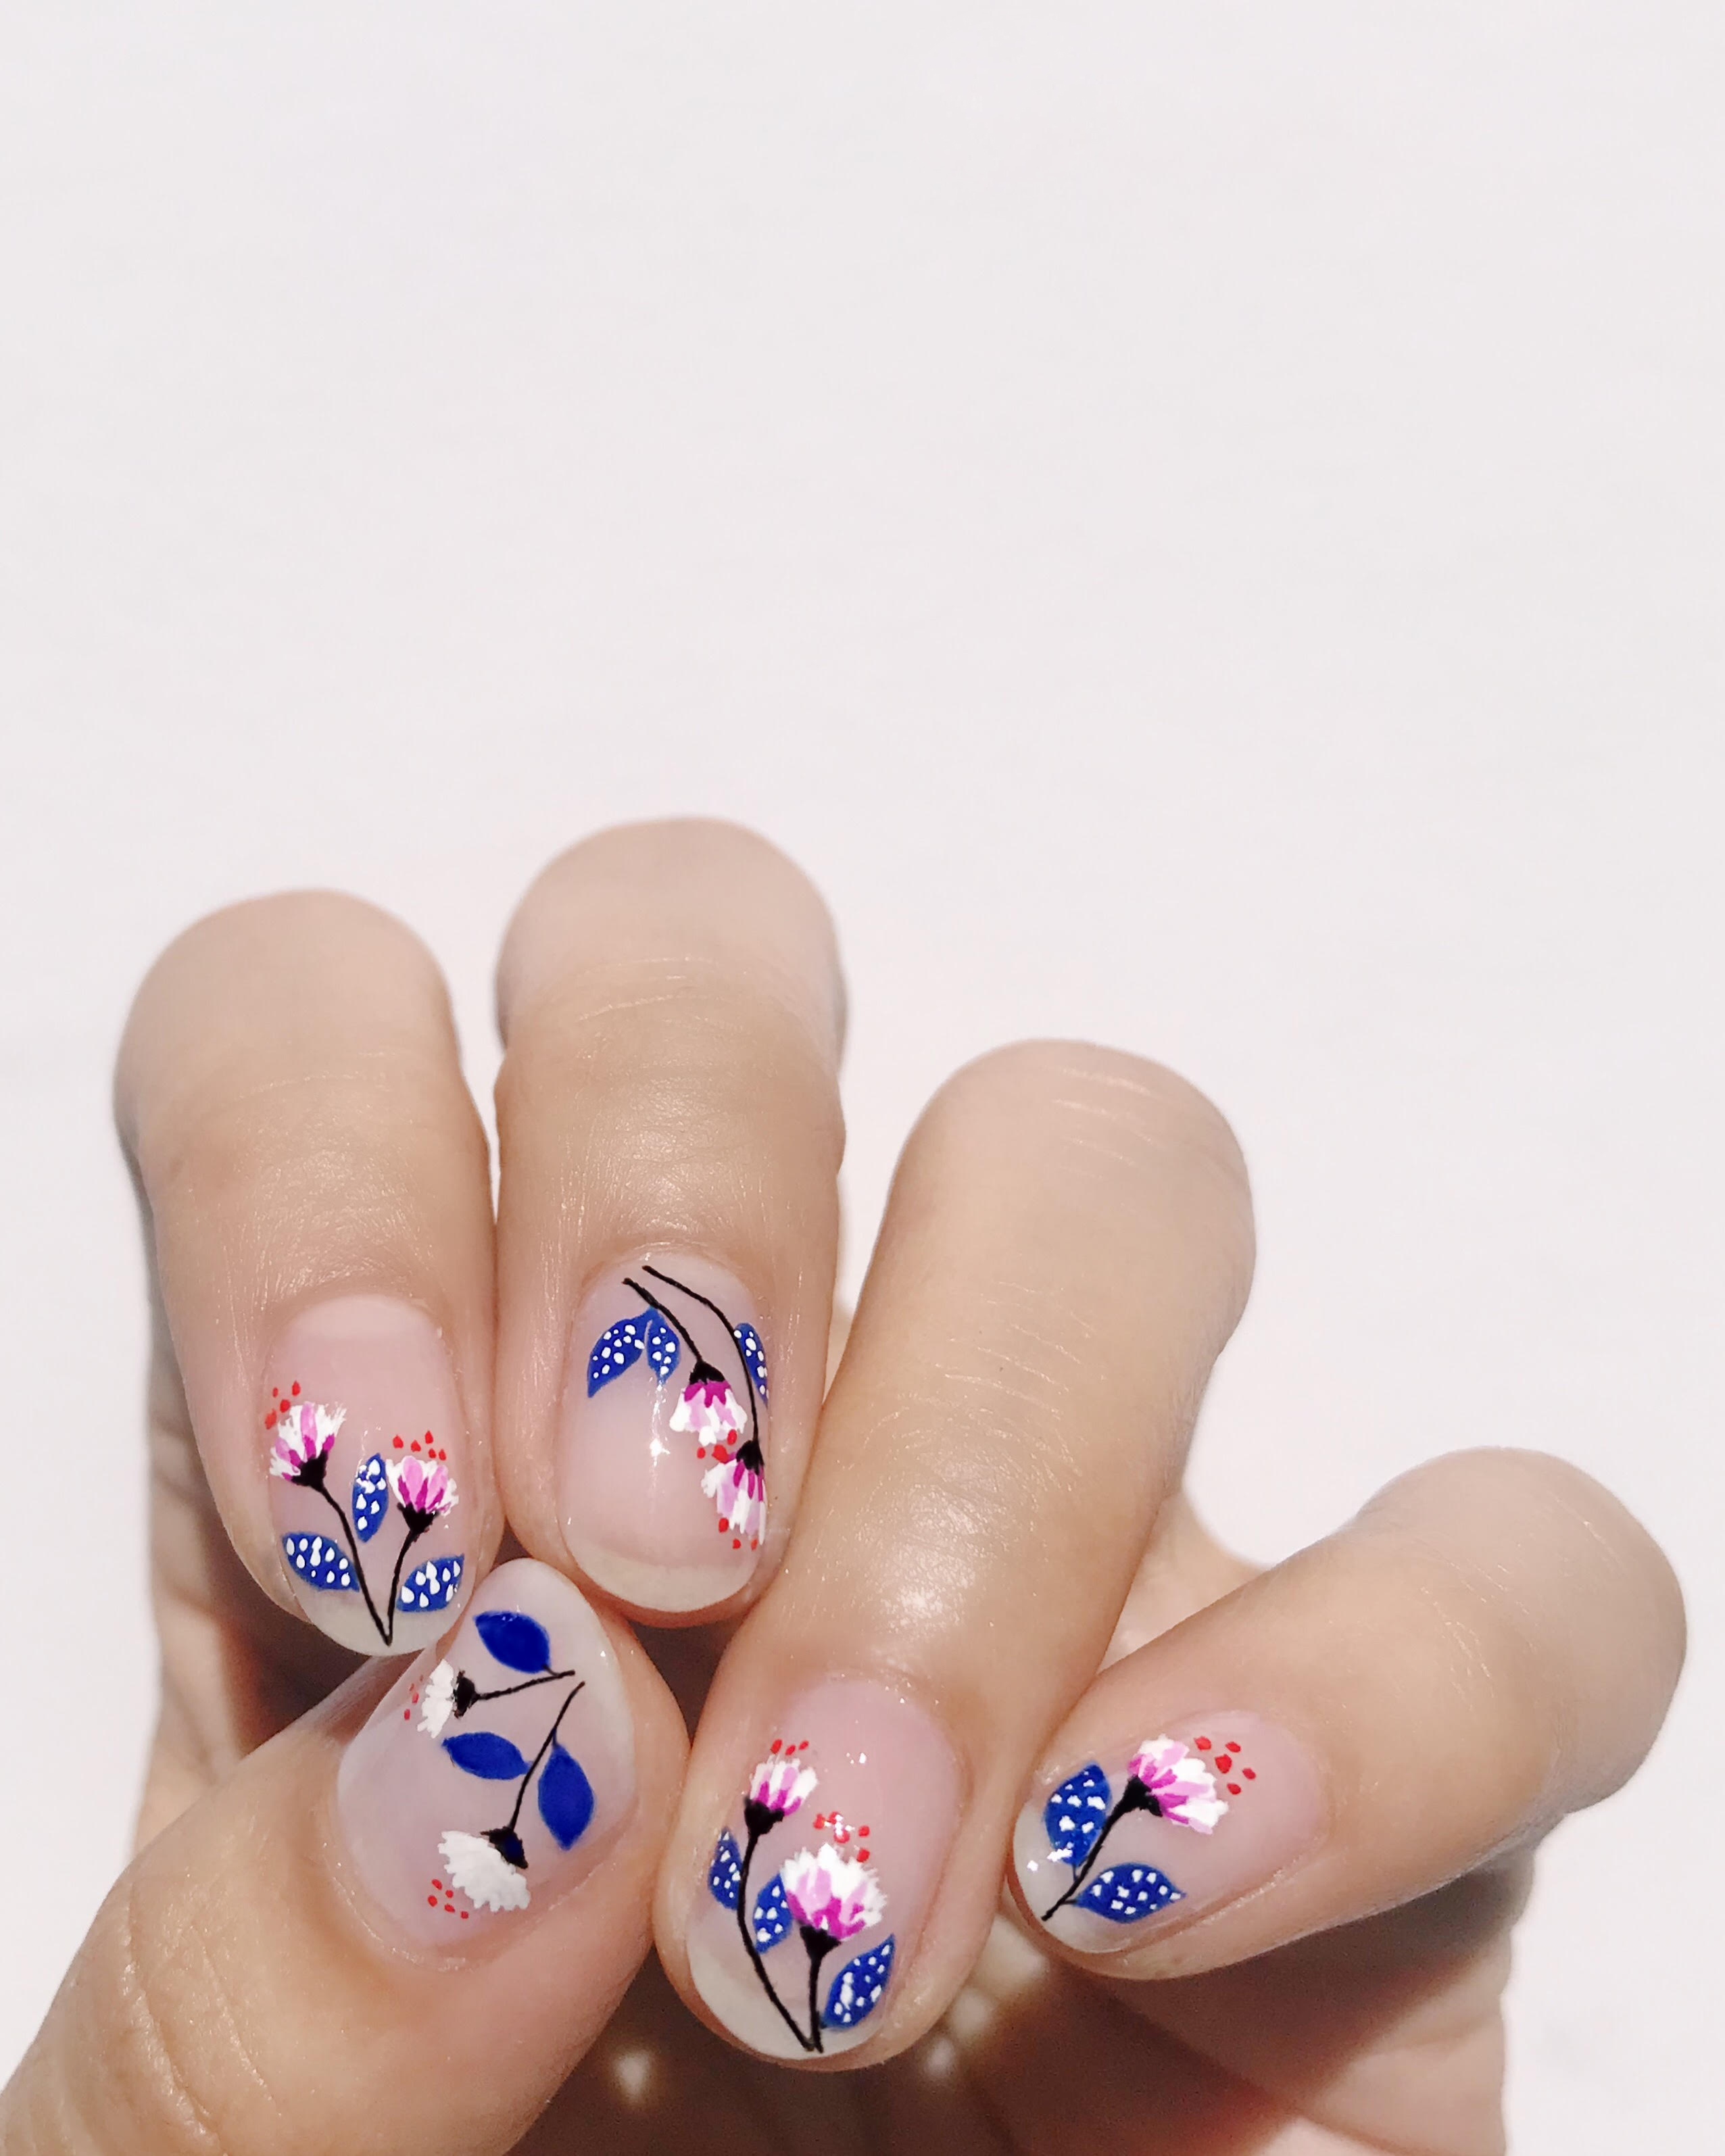 This Nail Flowers Design is Stunning and Simple , Lulus.com